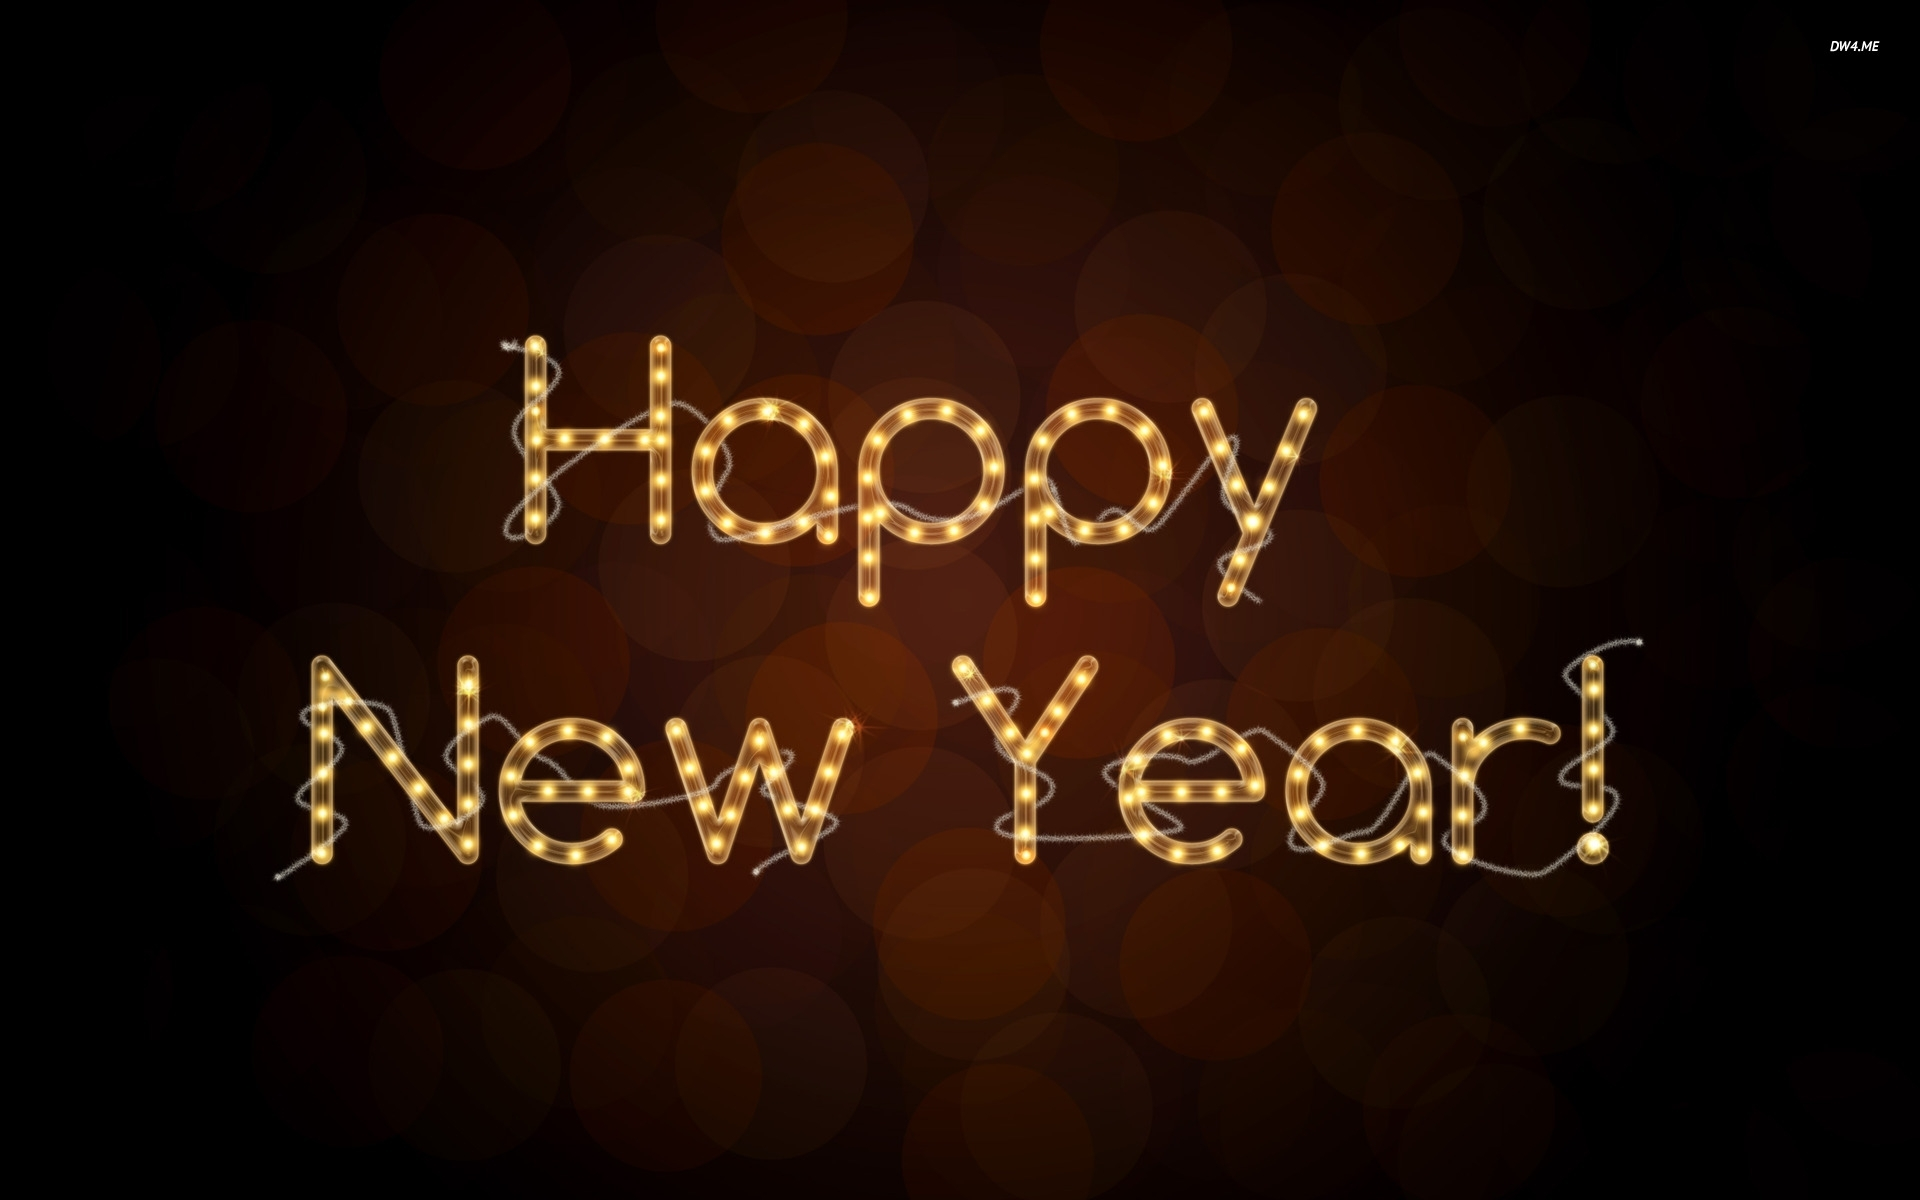 happy new year images hd free download | pixelstalk